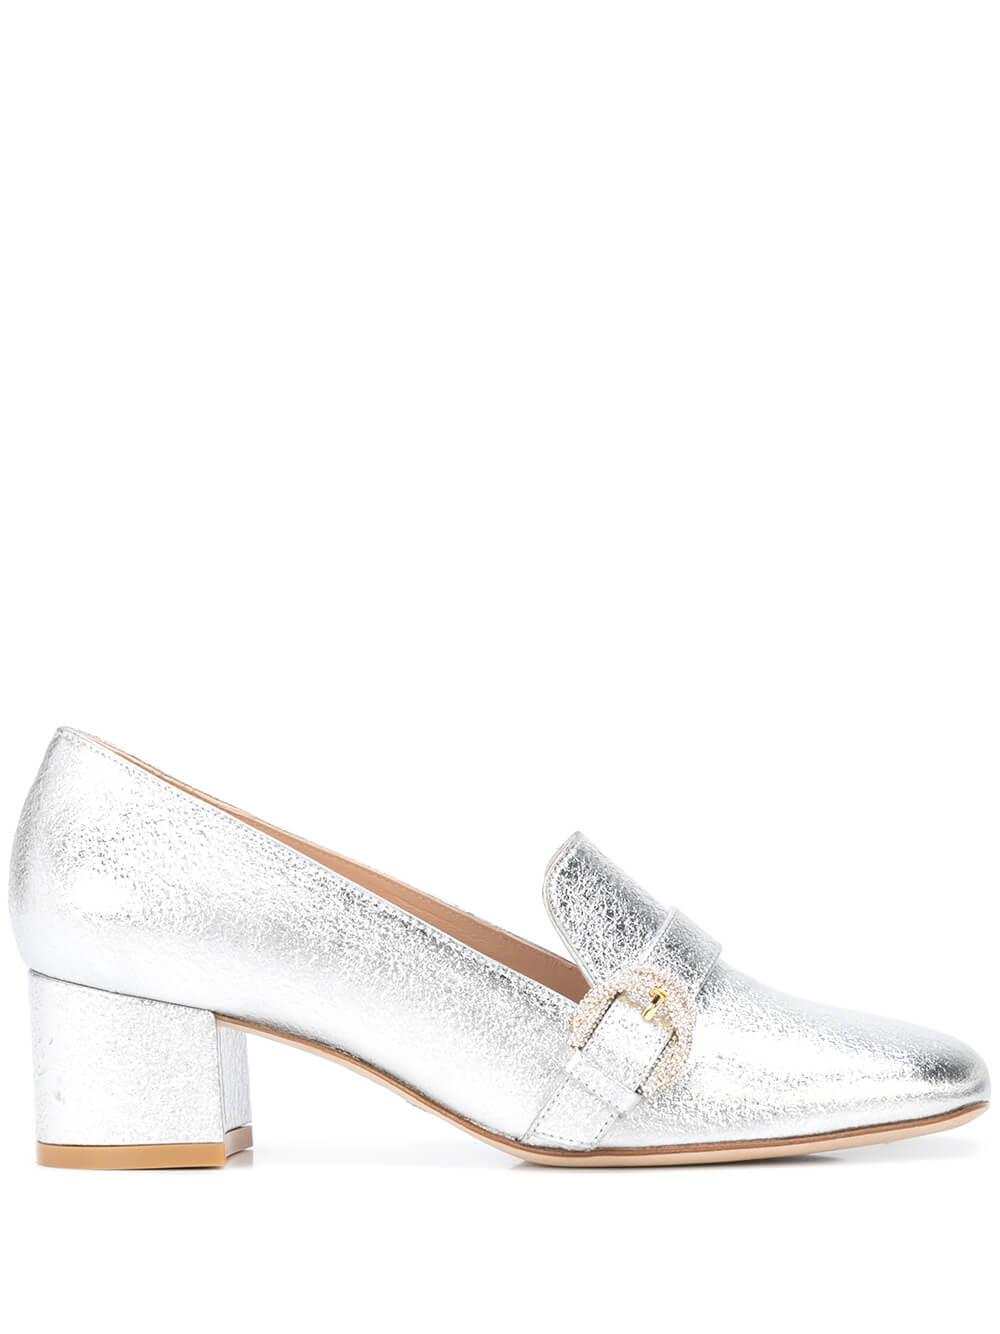 Lame Nappa 50MM Block Heel Loafer